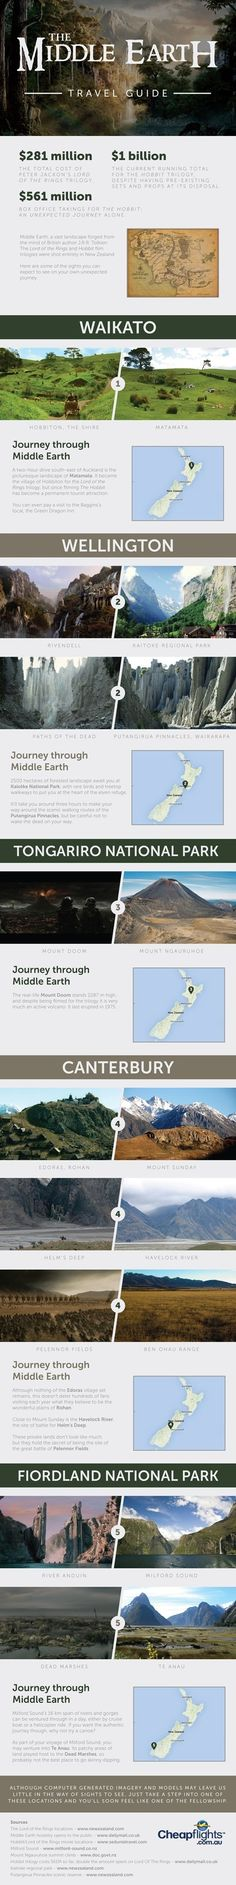 The Middle Earth Travel Guide. Filming locations in New Zealand from the movies.